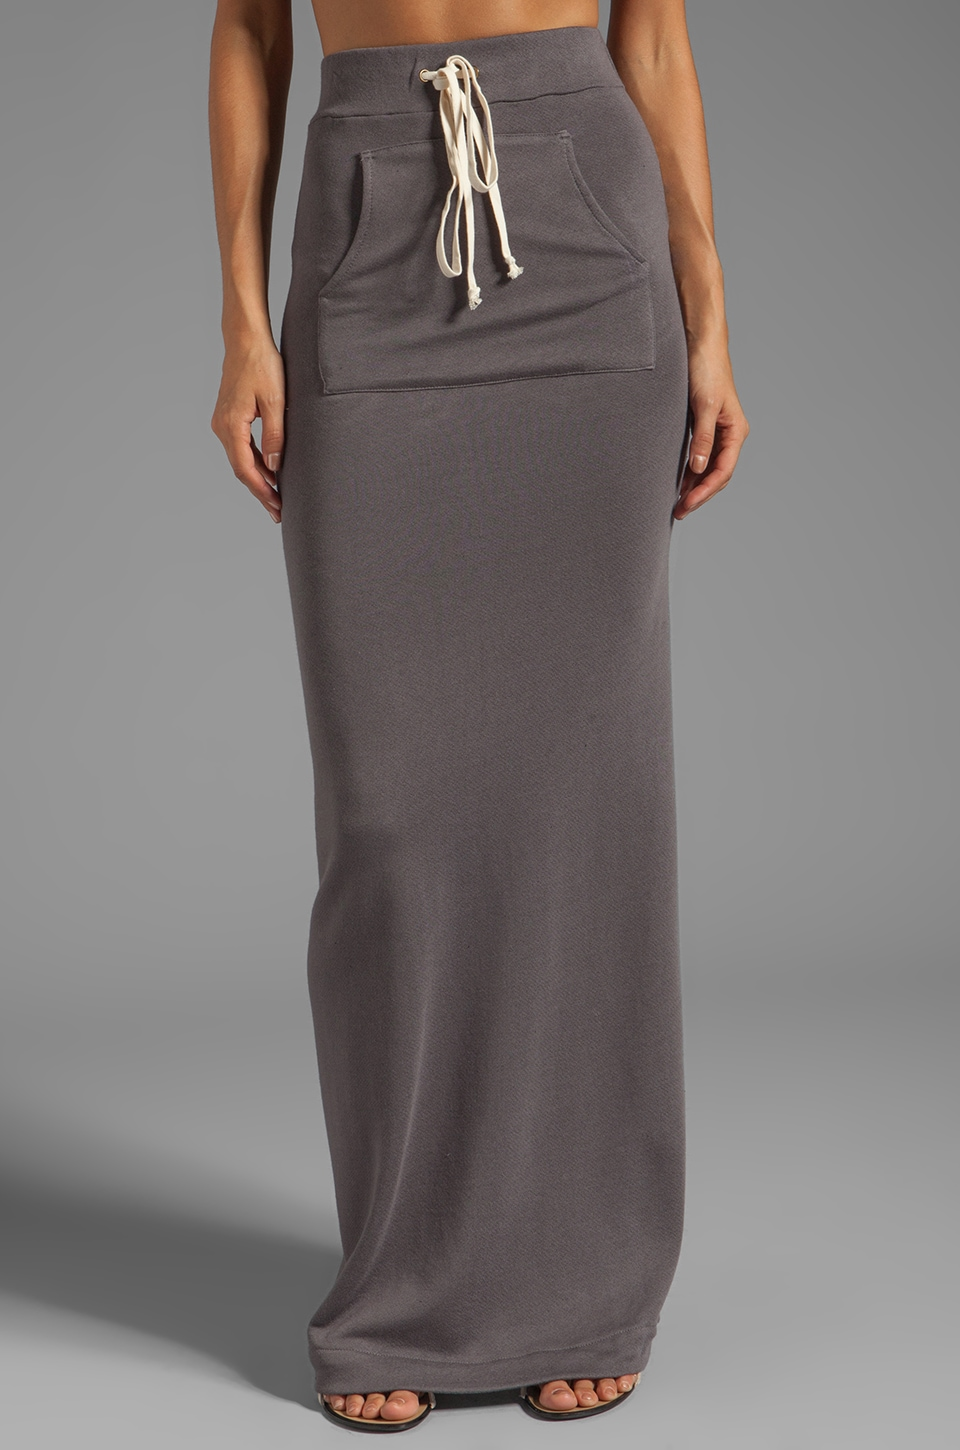 Enza Costa Cashmere French Terry Slit Maxi Skirt in Eiffel Tower